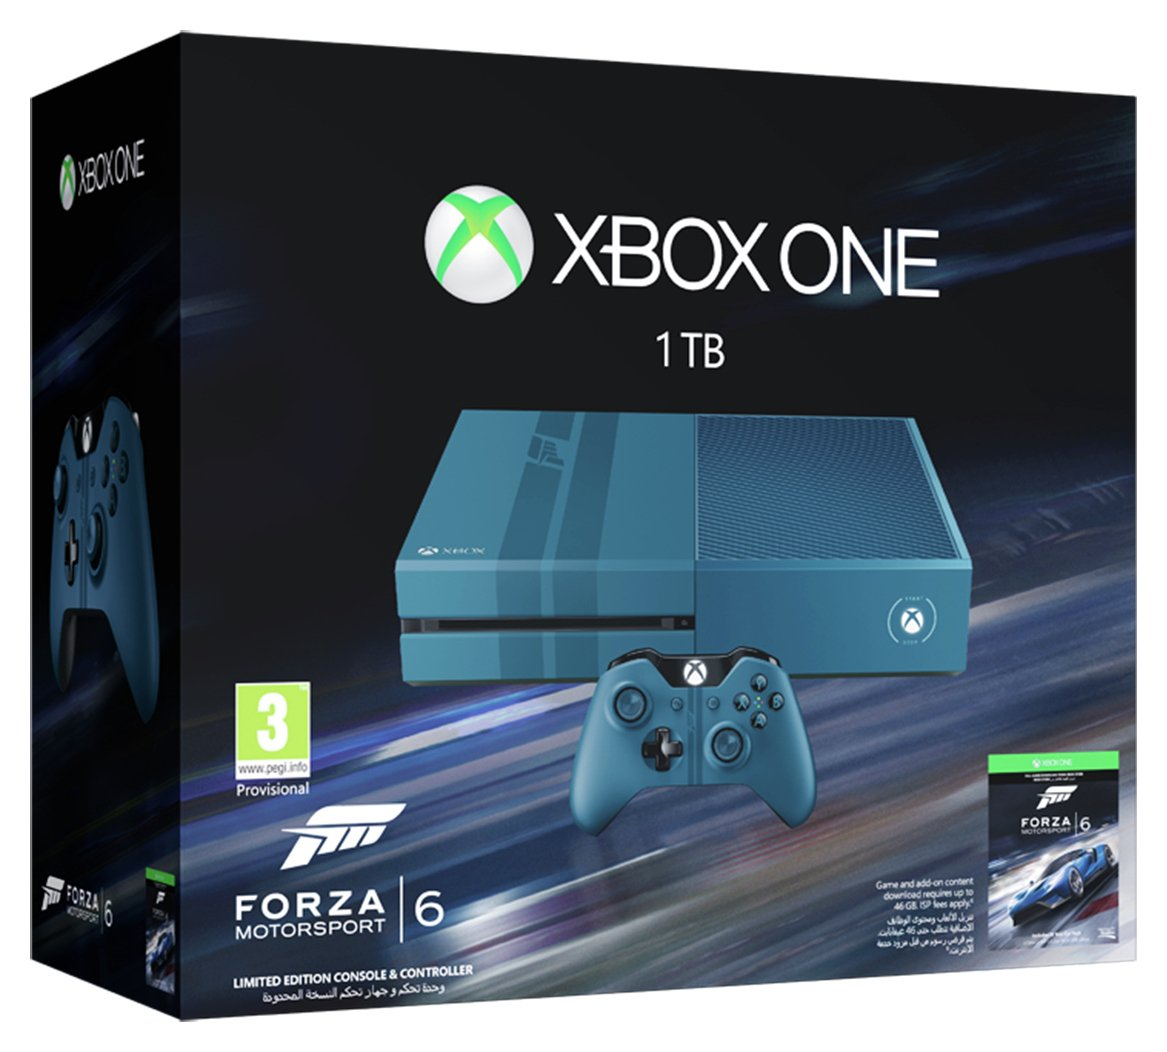 Xbox One 1TB Limited Edition Blue Console and Forza 6.